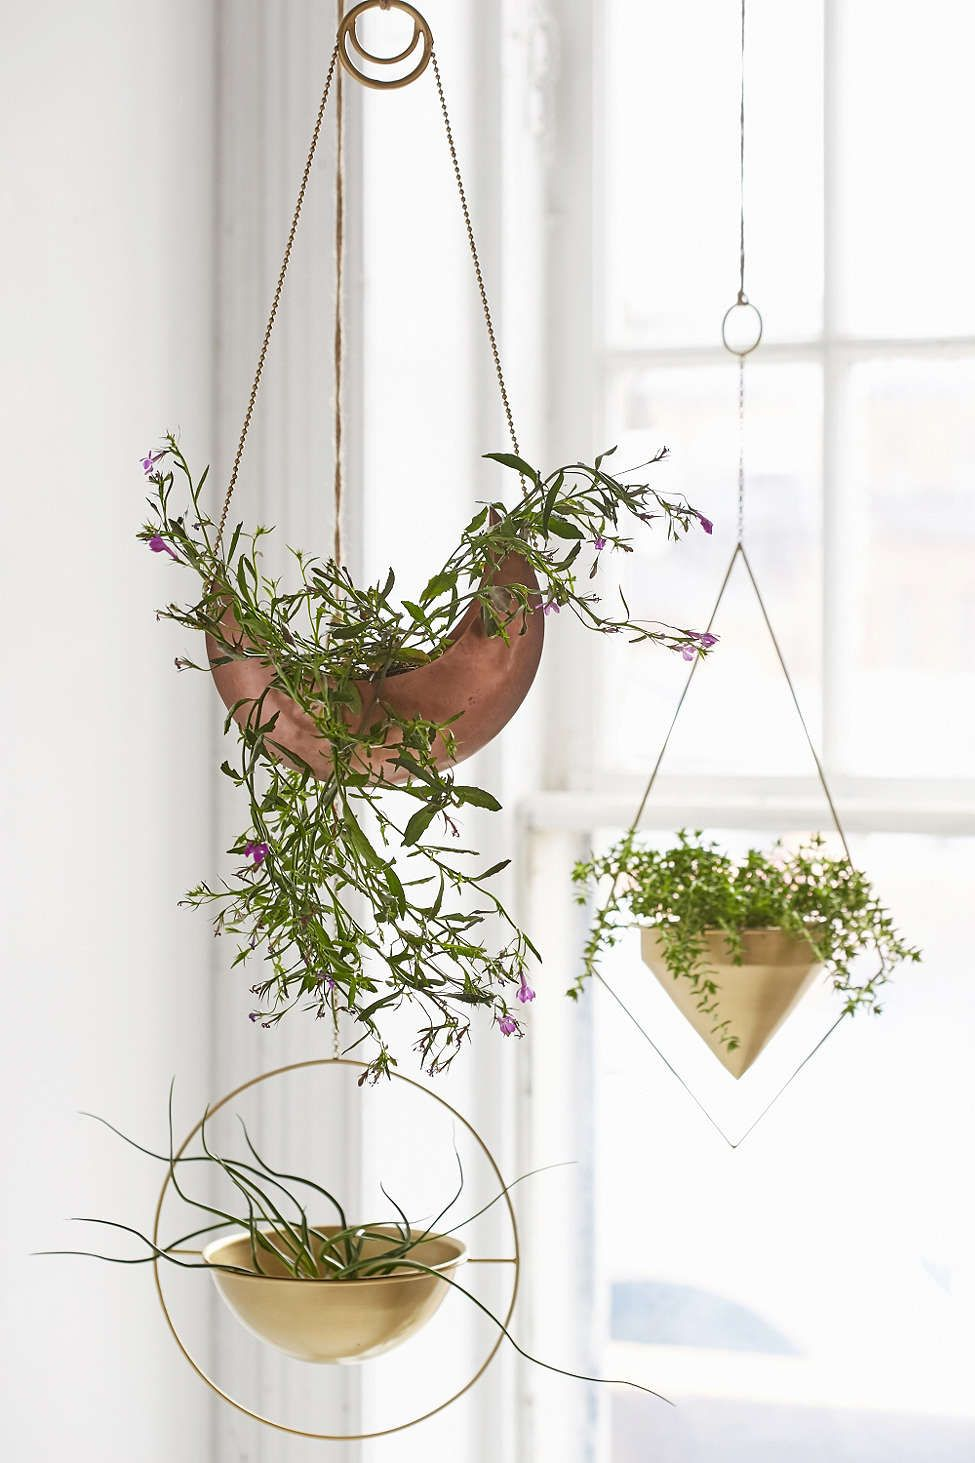 Decor8 Decorate Design Lifestyle Hanging Plants Plant Decor Urban Outfitters Home